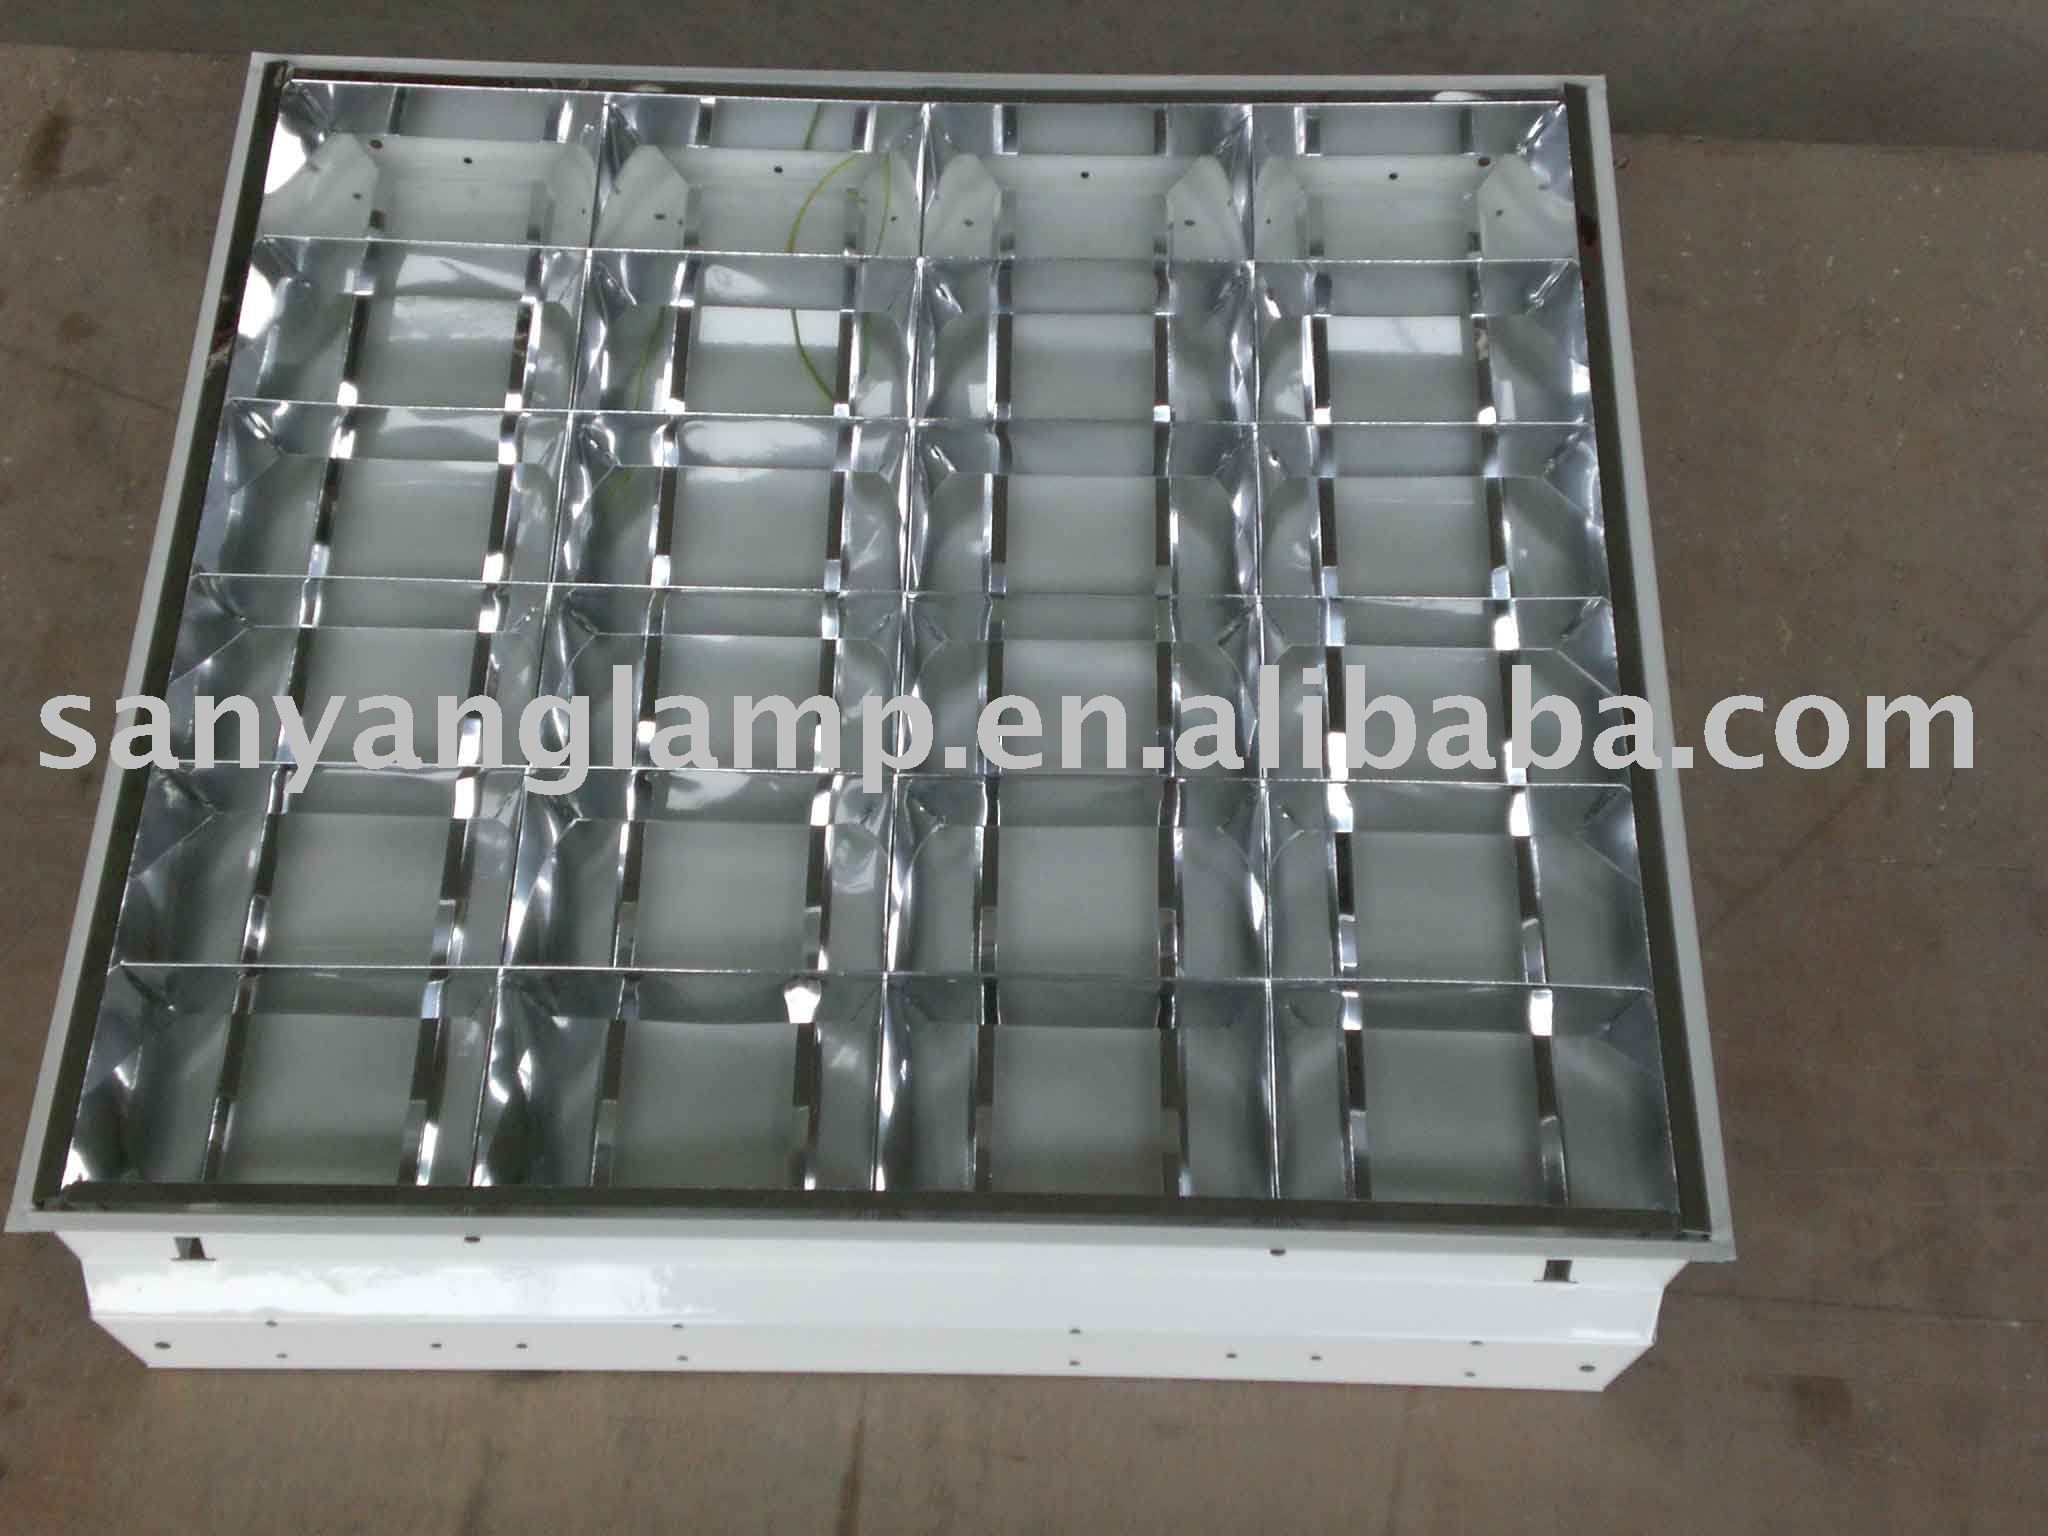 60X60CM T8 recessed Indoor grid lamp for 4 18W tubes